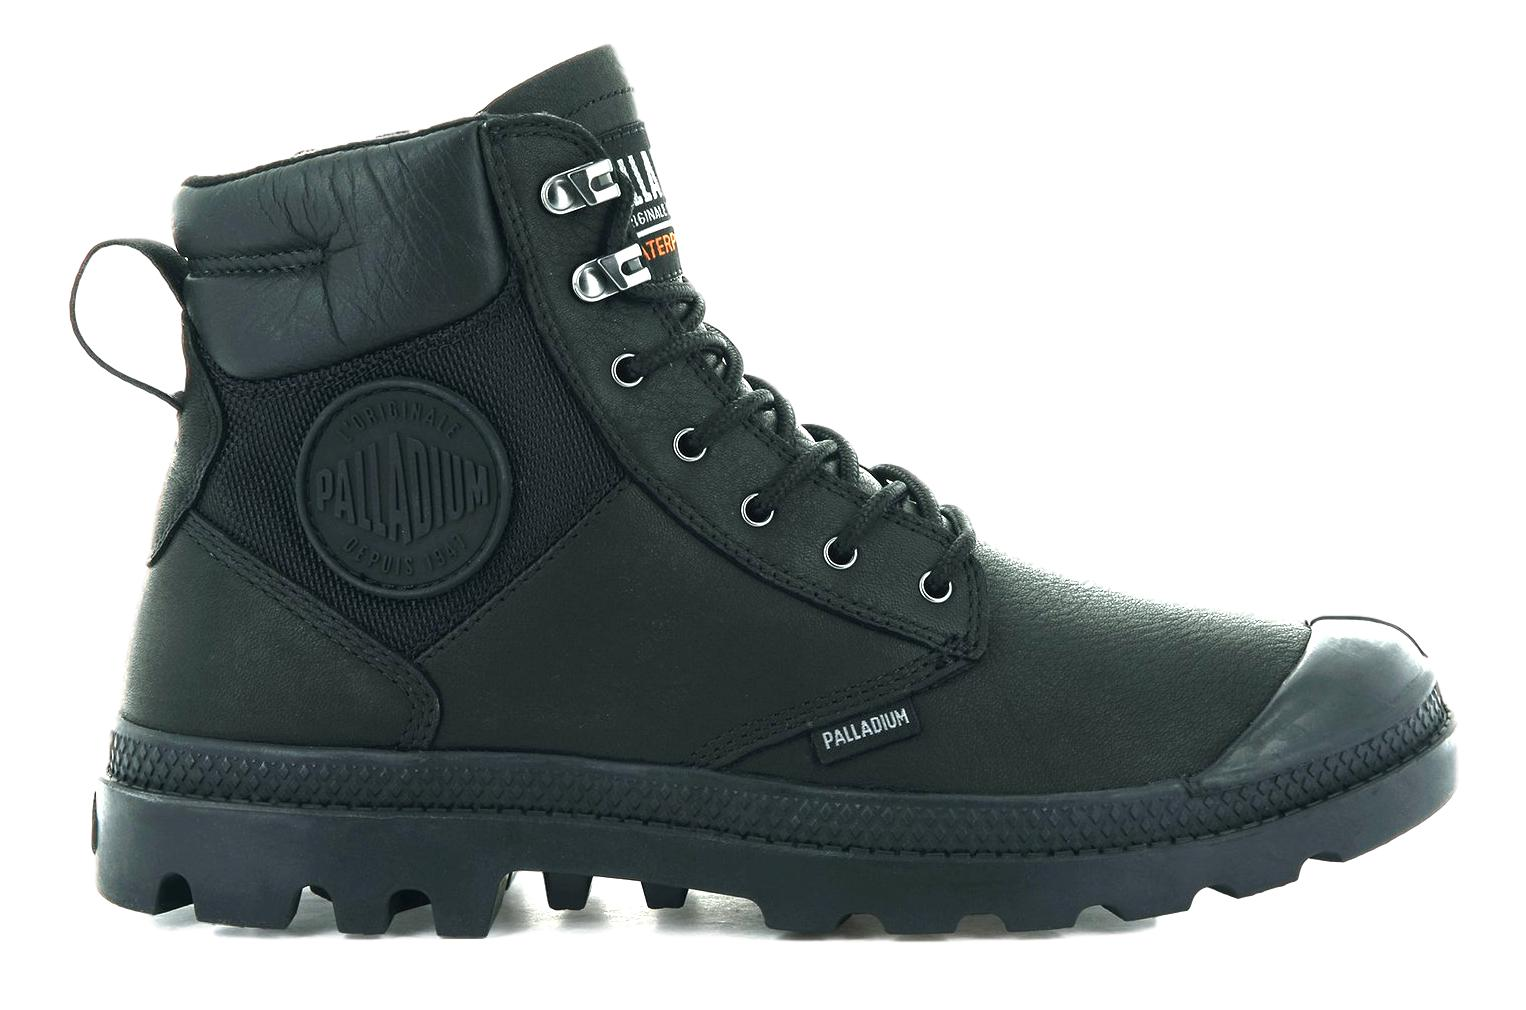 PALLADIUM SCARPONCINI UOMO PAMPA SHIELD WP LTH COLORE BLACK